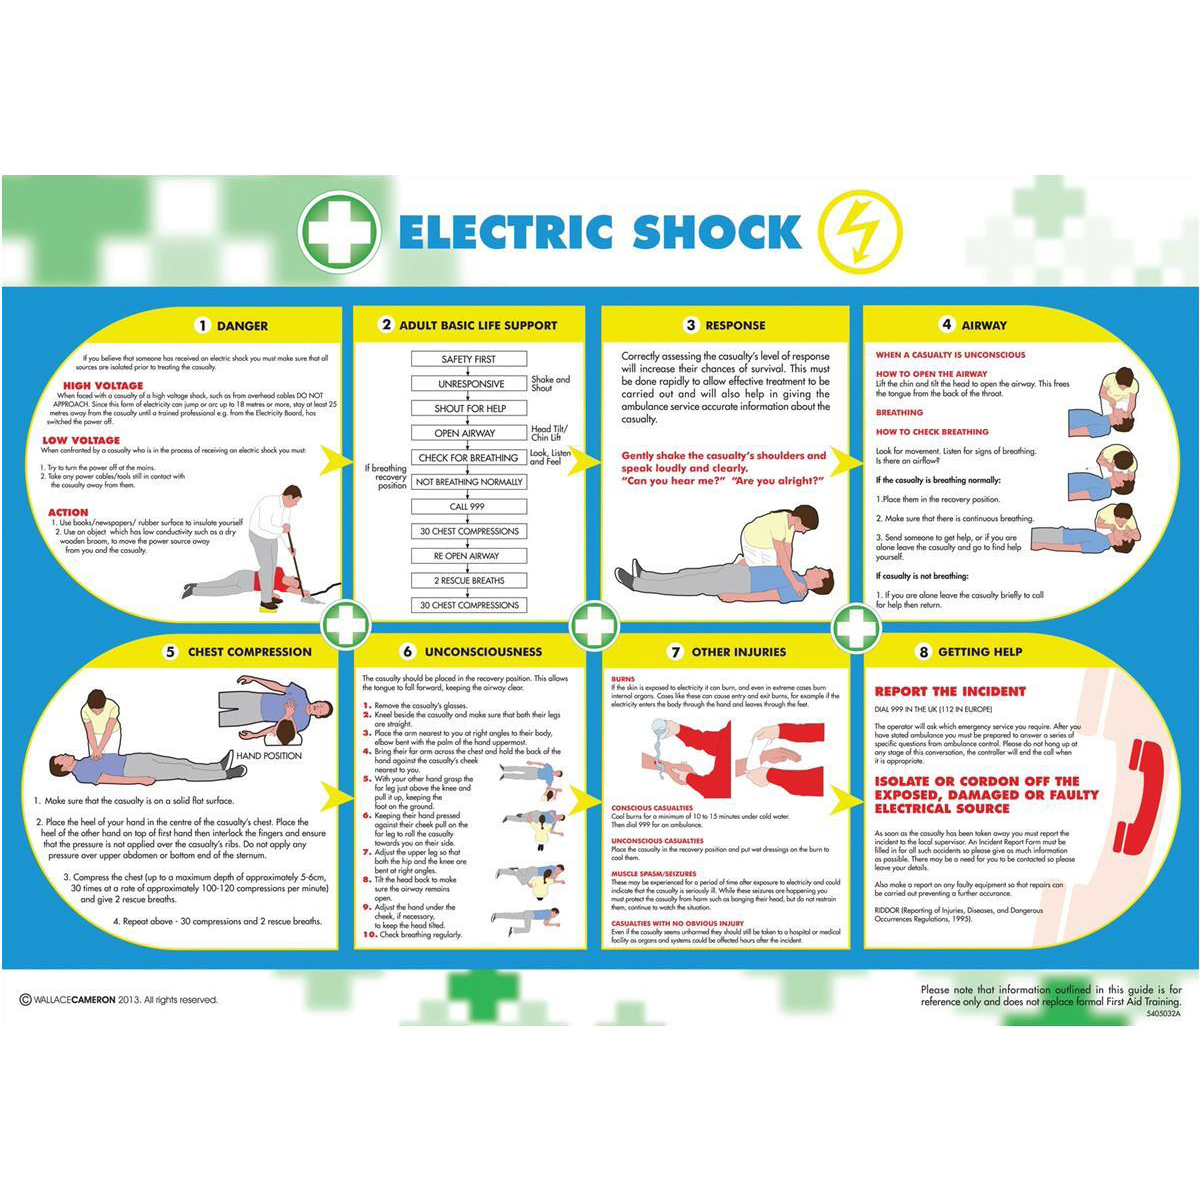 Signs Wallace Cameron Electric Shock Poster Laminated Wall-mountable W590xH420mm Ref 5405026